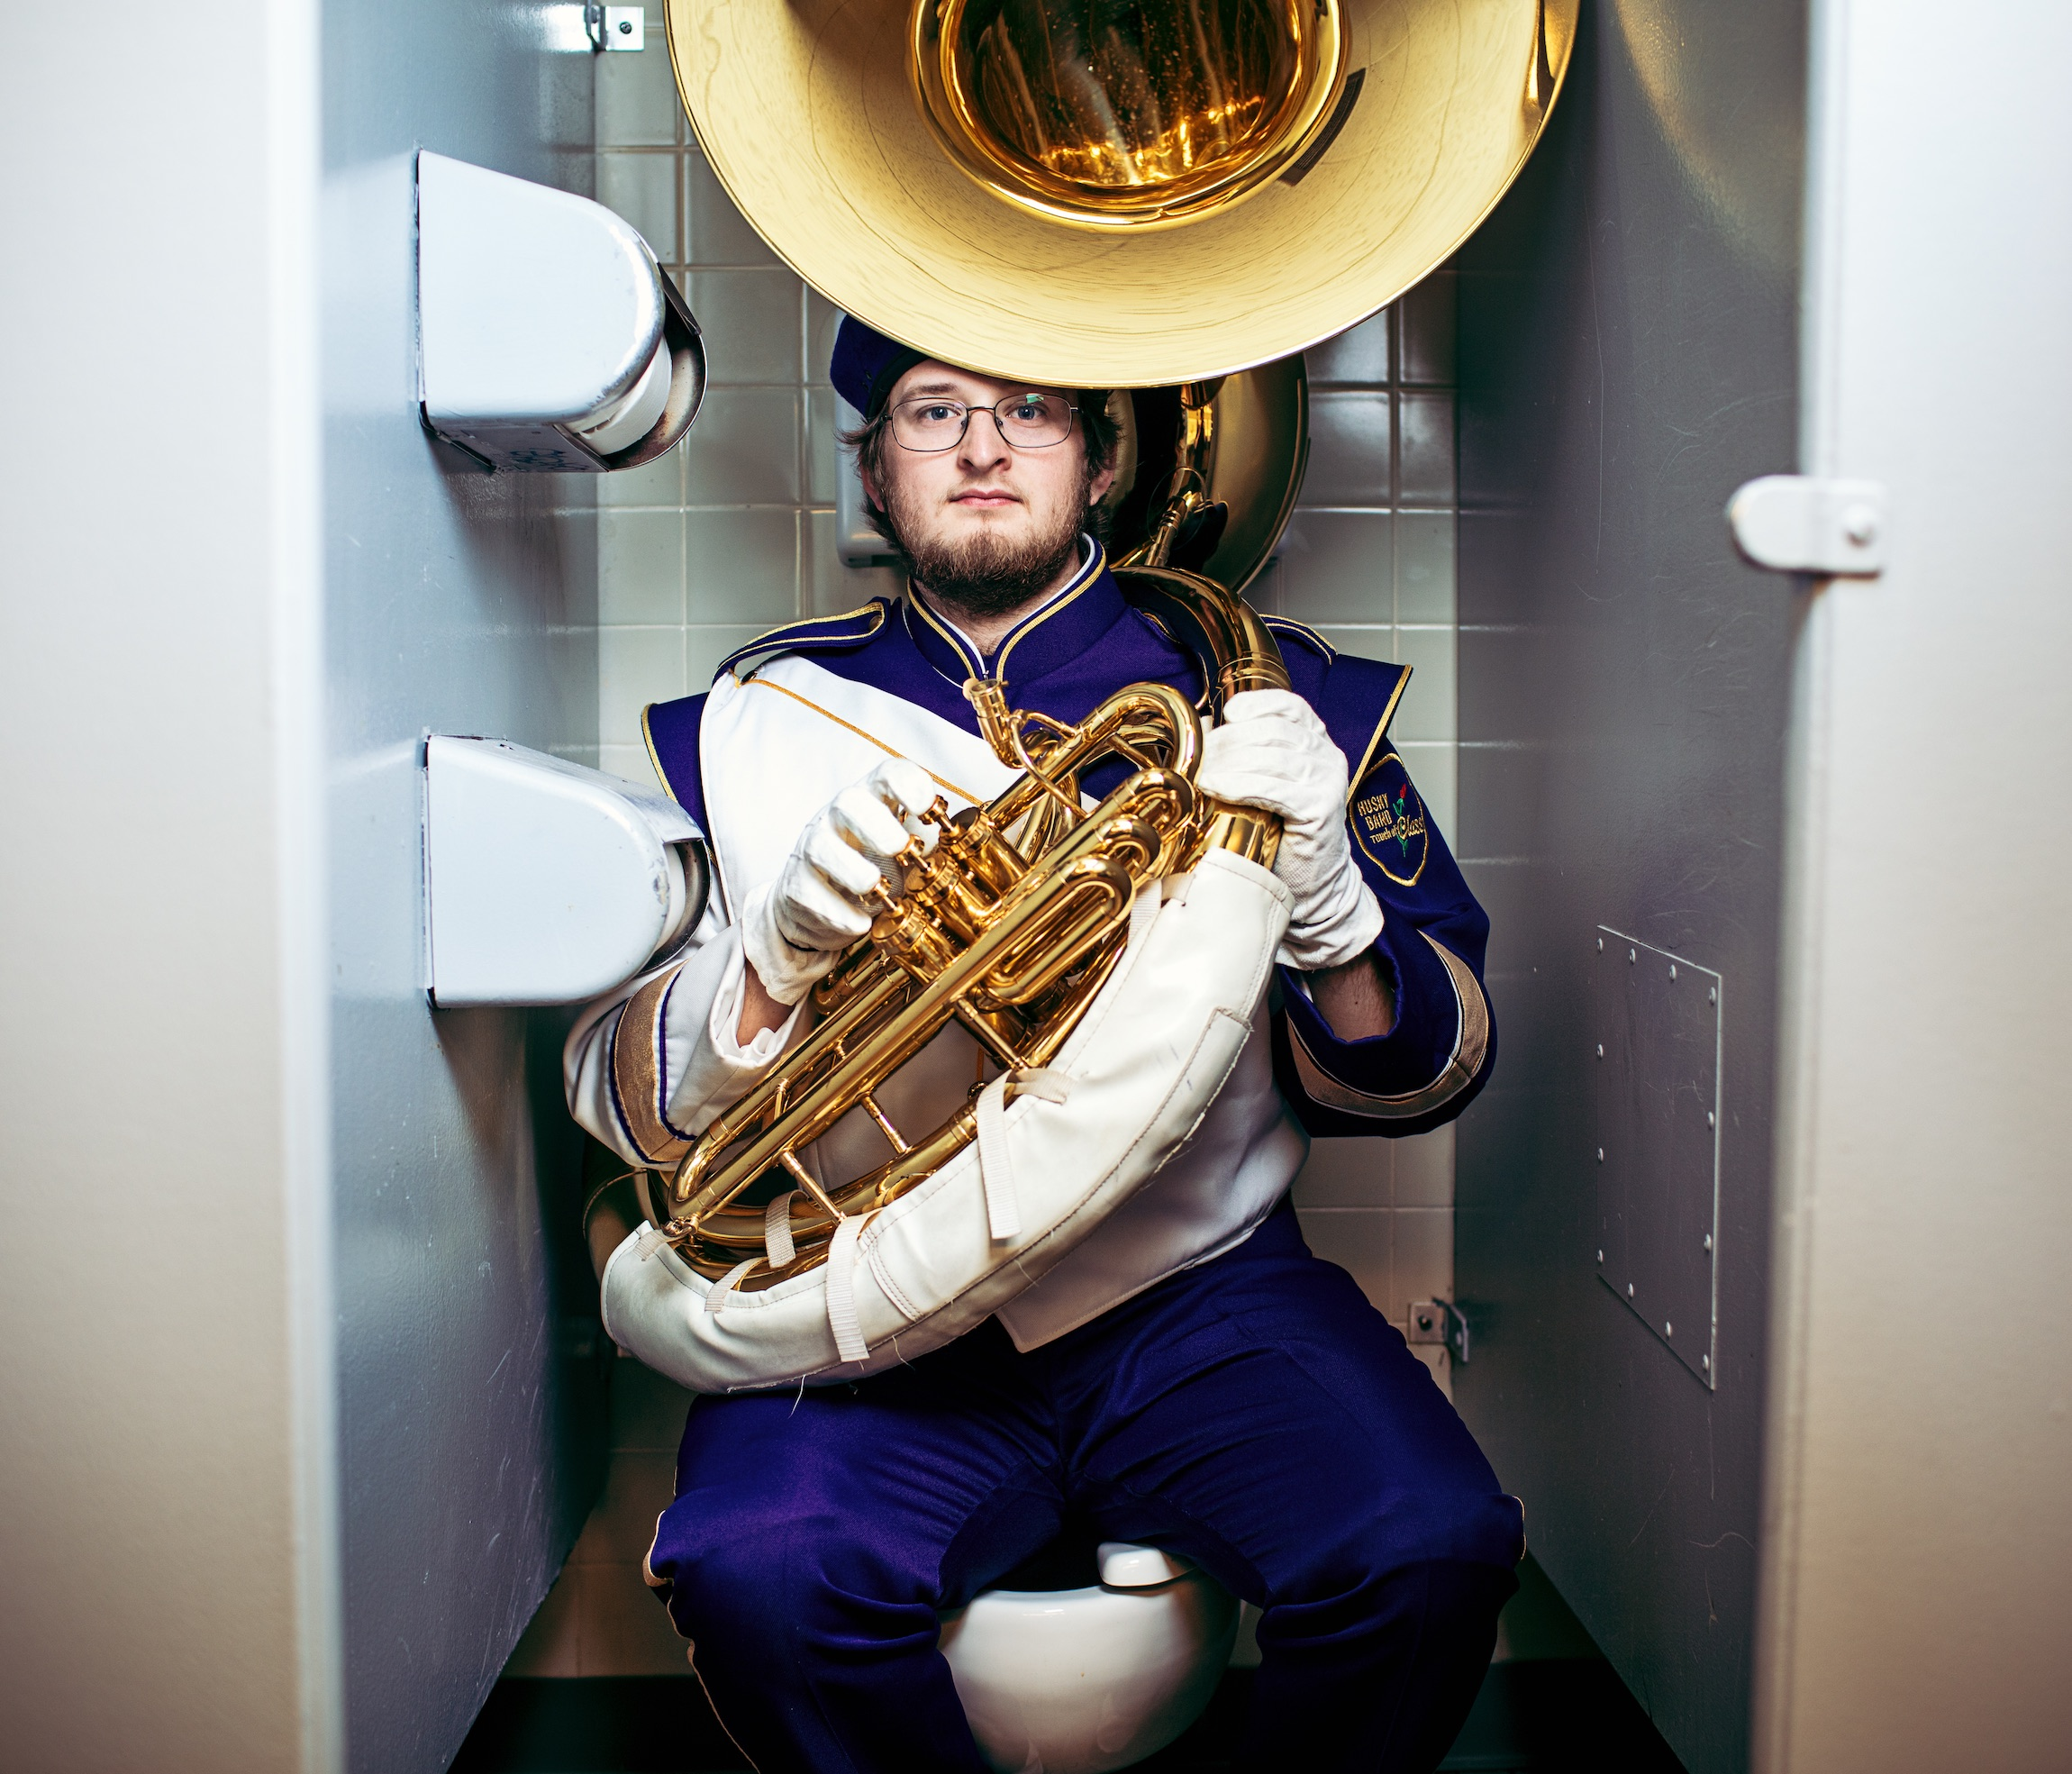 jeffrey whaley, jeff whaley, sousaphone uw, uw marching band, by george cafe